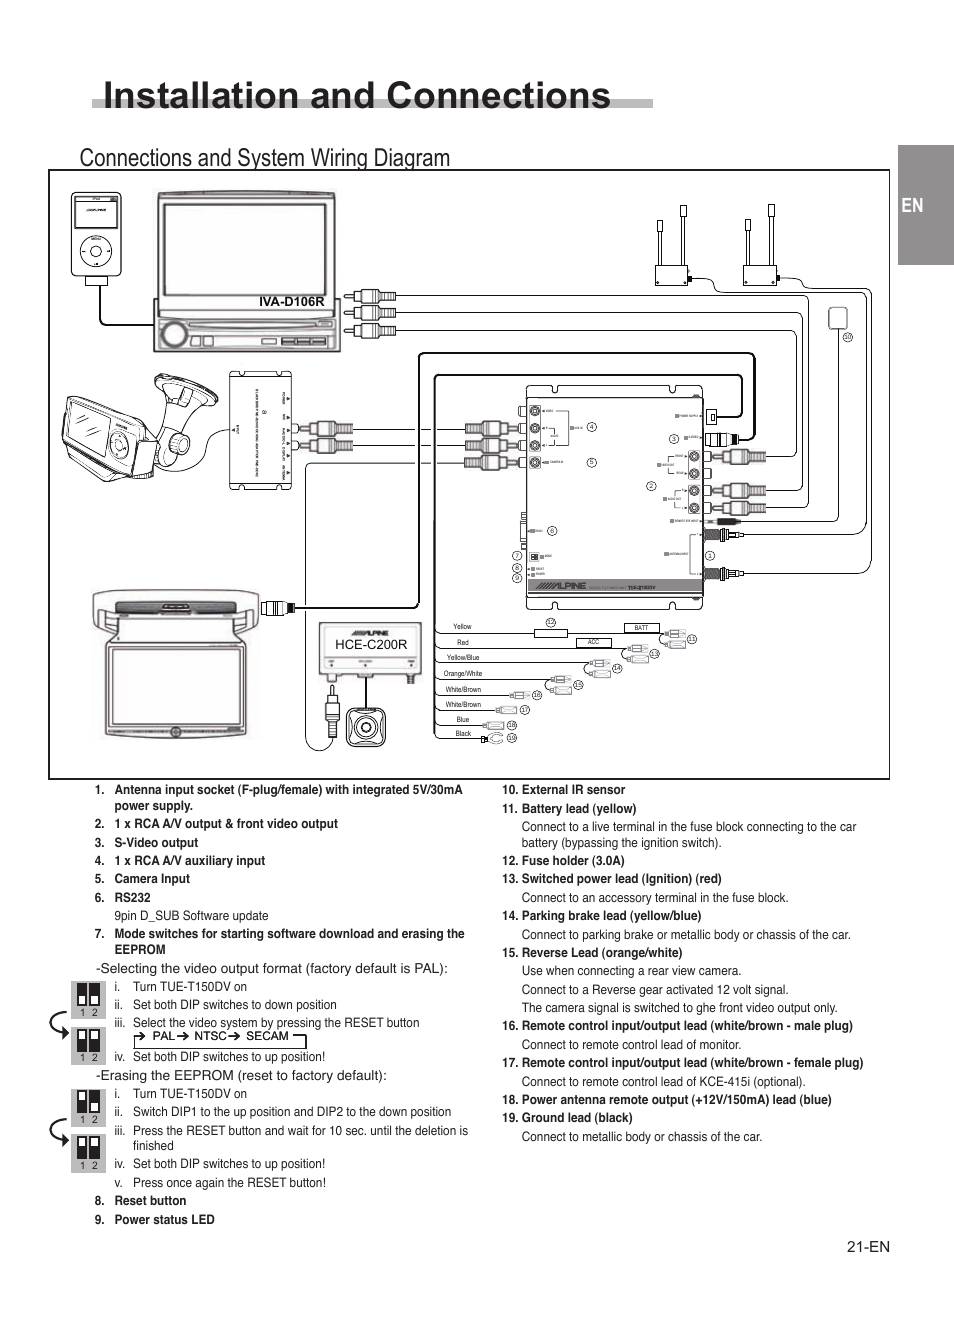 medium resolution of installation and connections connections and system wiring diagram precautions alpine tue t150dv user manual page 19 140